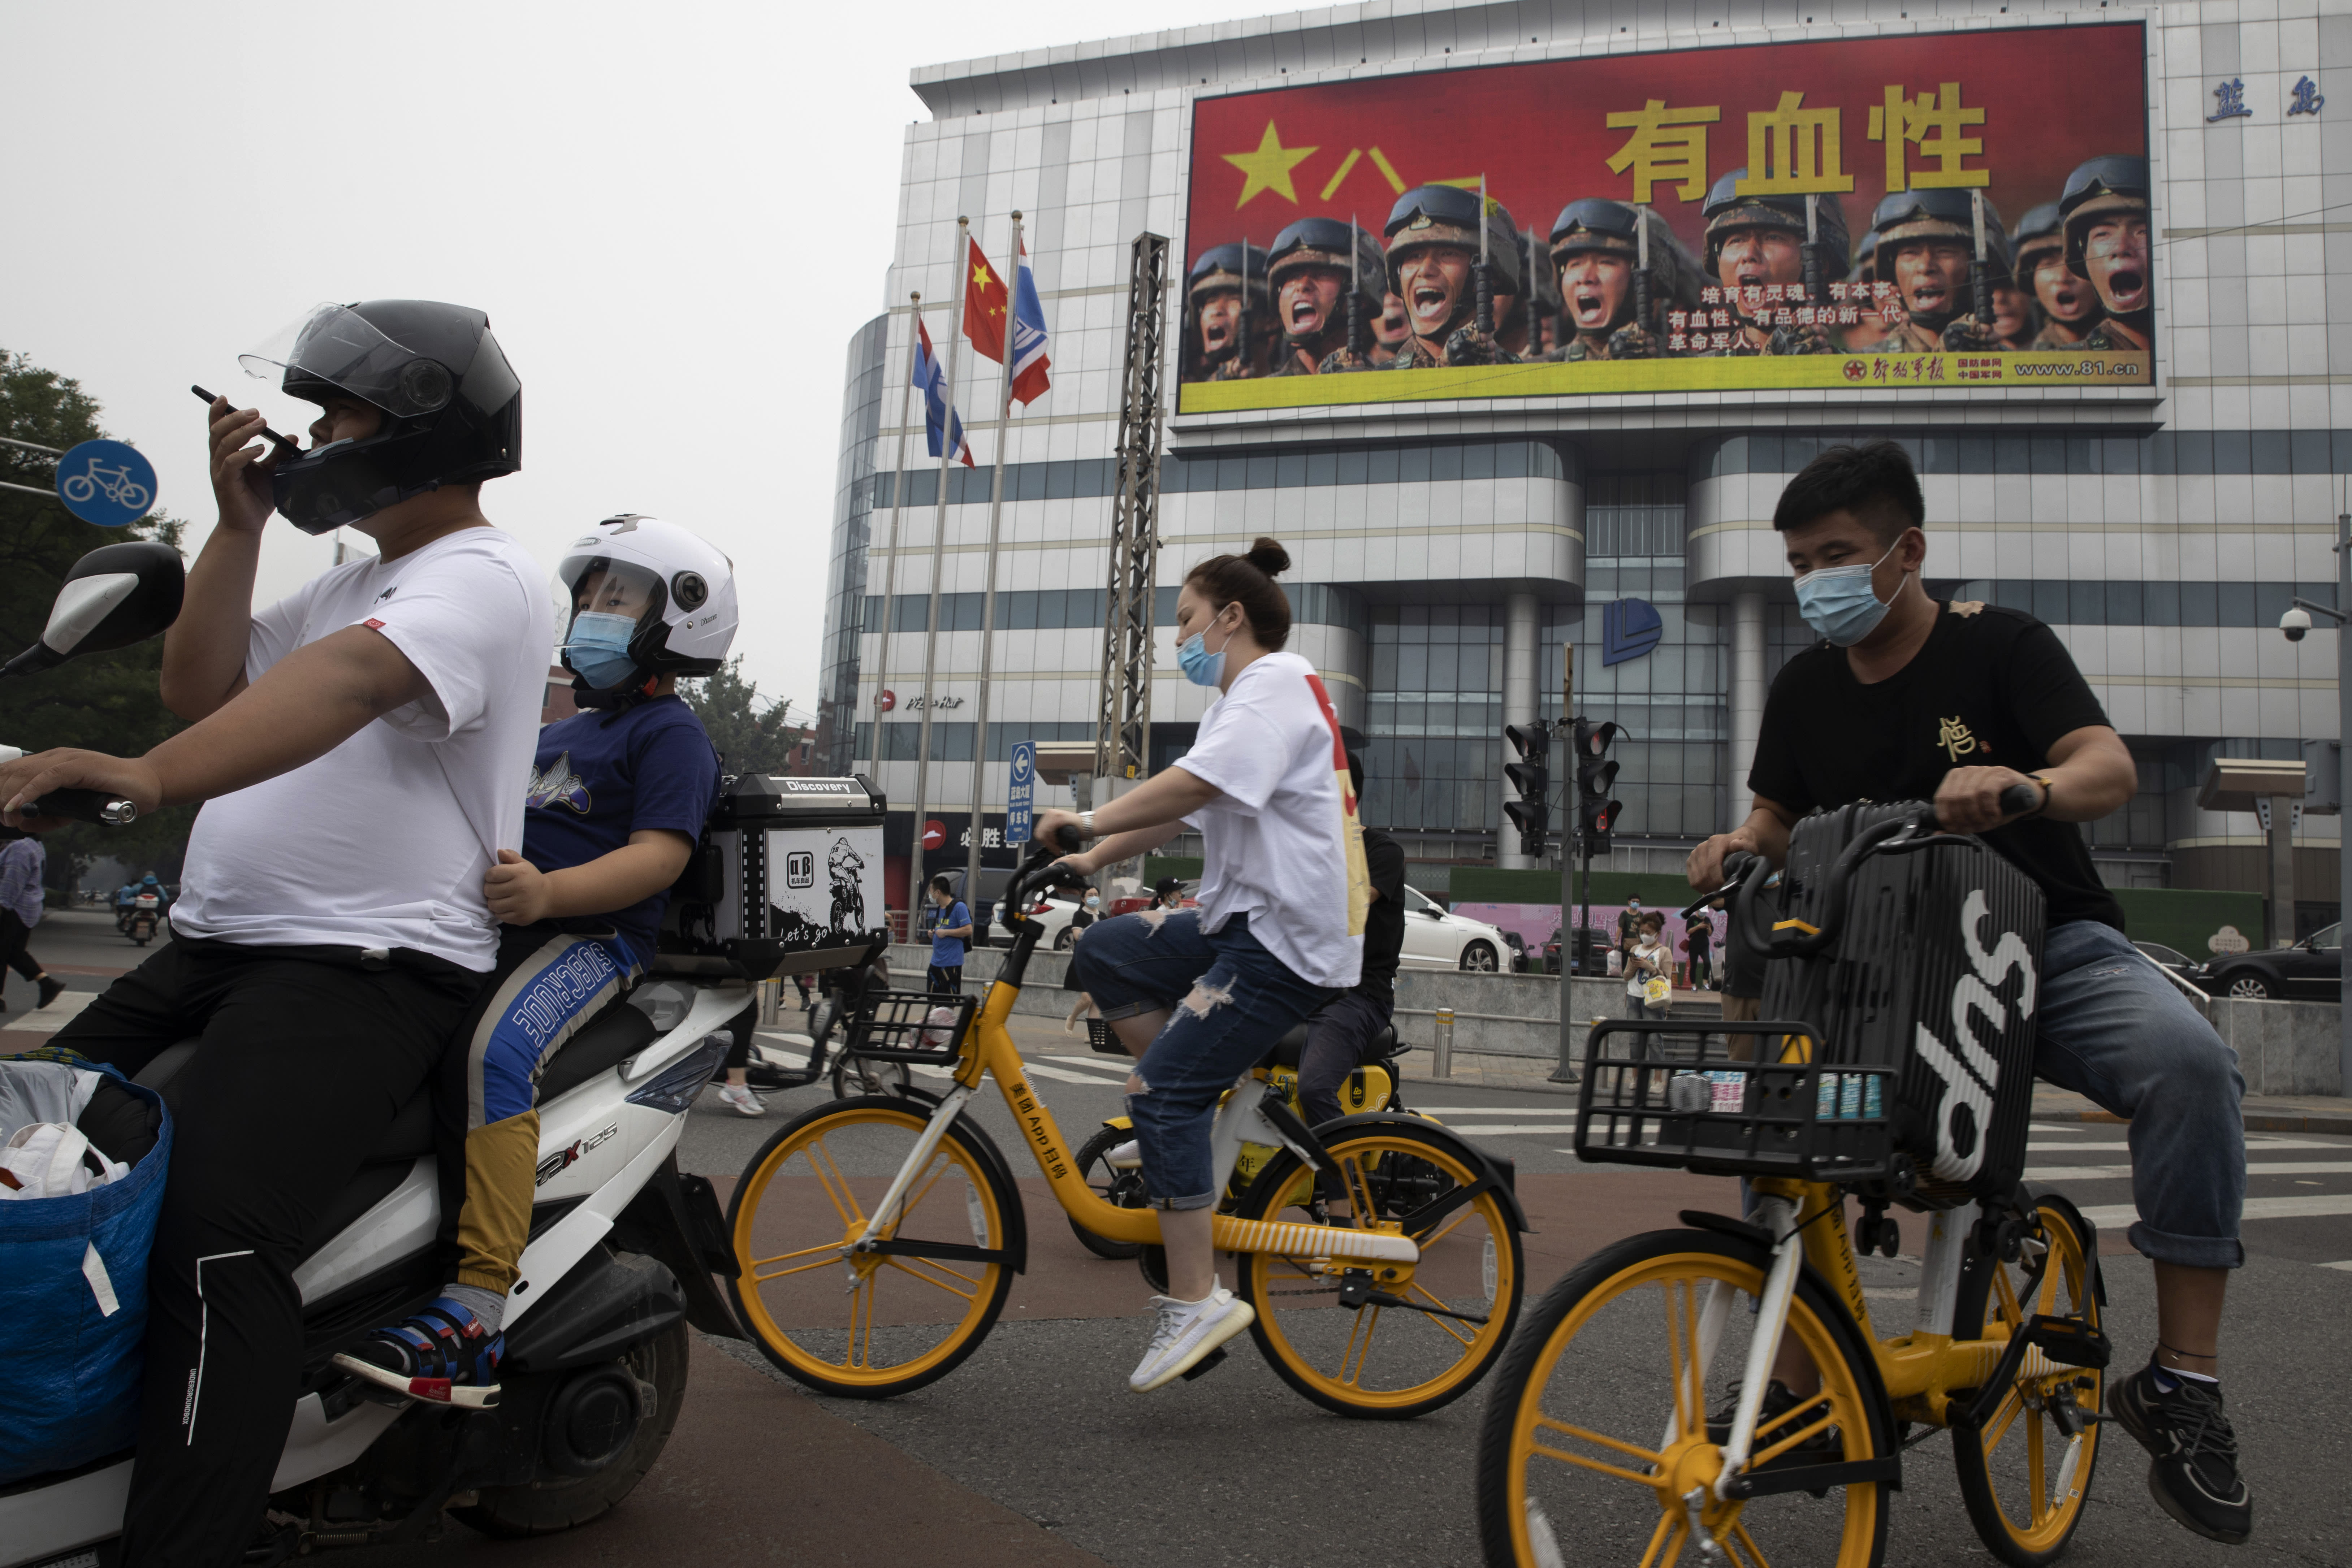 """Residents ride past Chinese military propaganda with the slogan """"Heroic"""" in Beijing on Wednesday, Aug. 26, 2020. China's military test-fired two missiles into the South China Sea, including a """"carrier killer"""" military analysts suggest might have been developed to attack U.S. forces, a newspaper reported Thursday, Aug. 27, 2020. (AP Photo/Ng Han Guan)"""